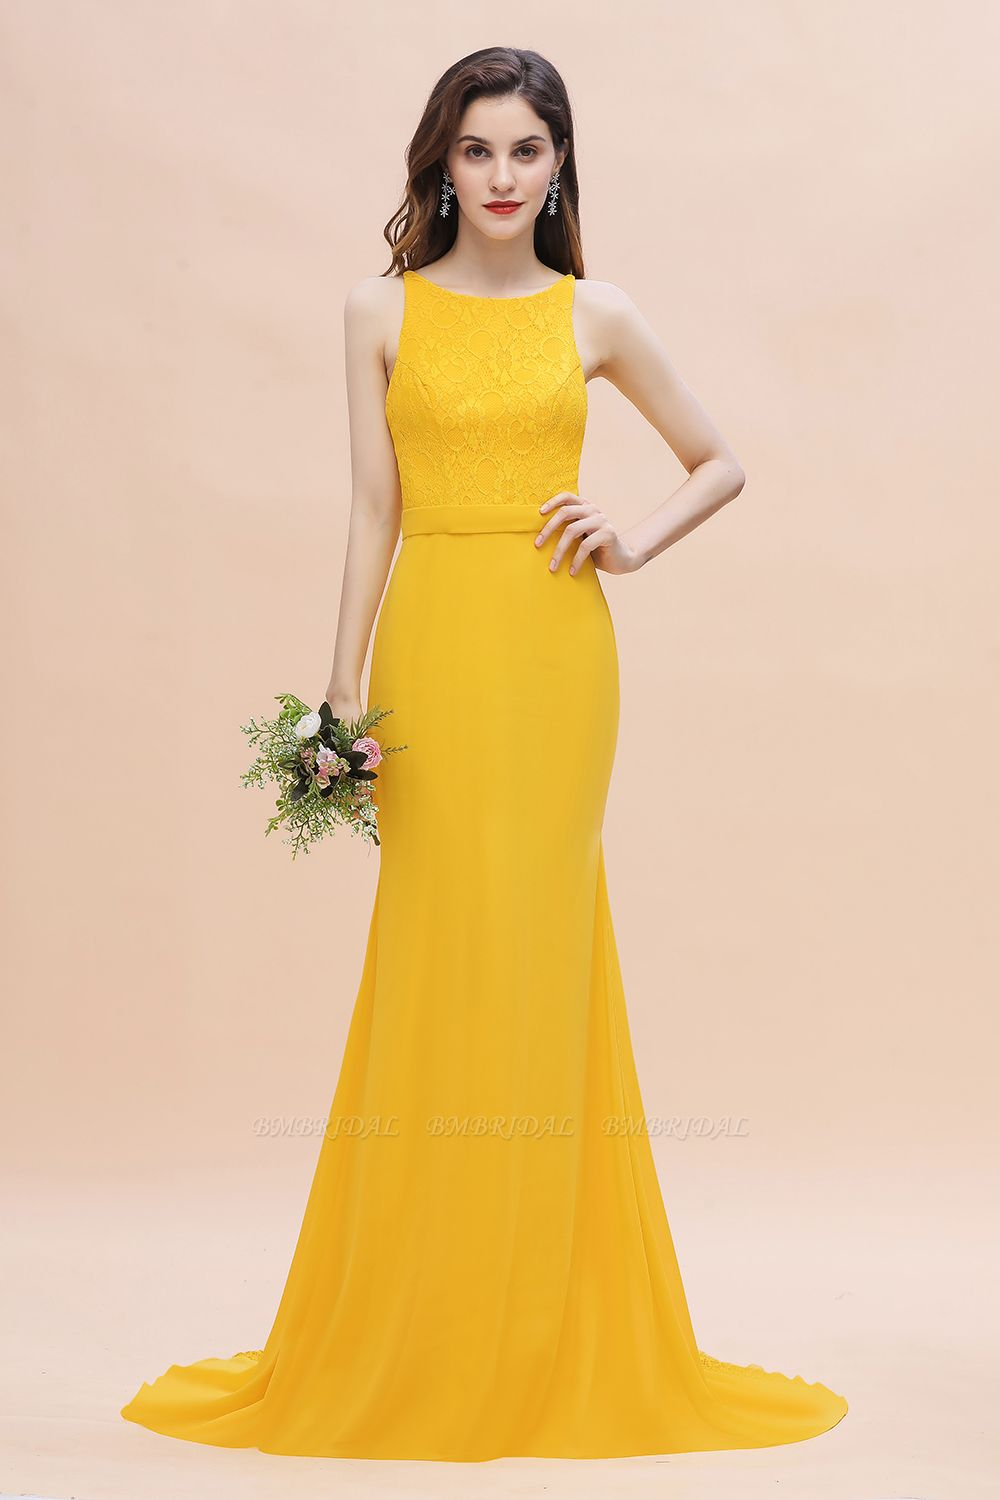 BMbridal Elegant Jewel Mermaid Chiffon Lace Bridesmaid Dress On Sale